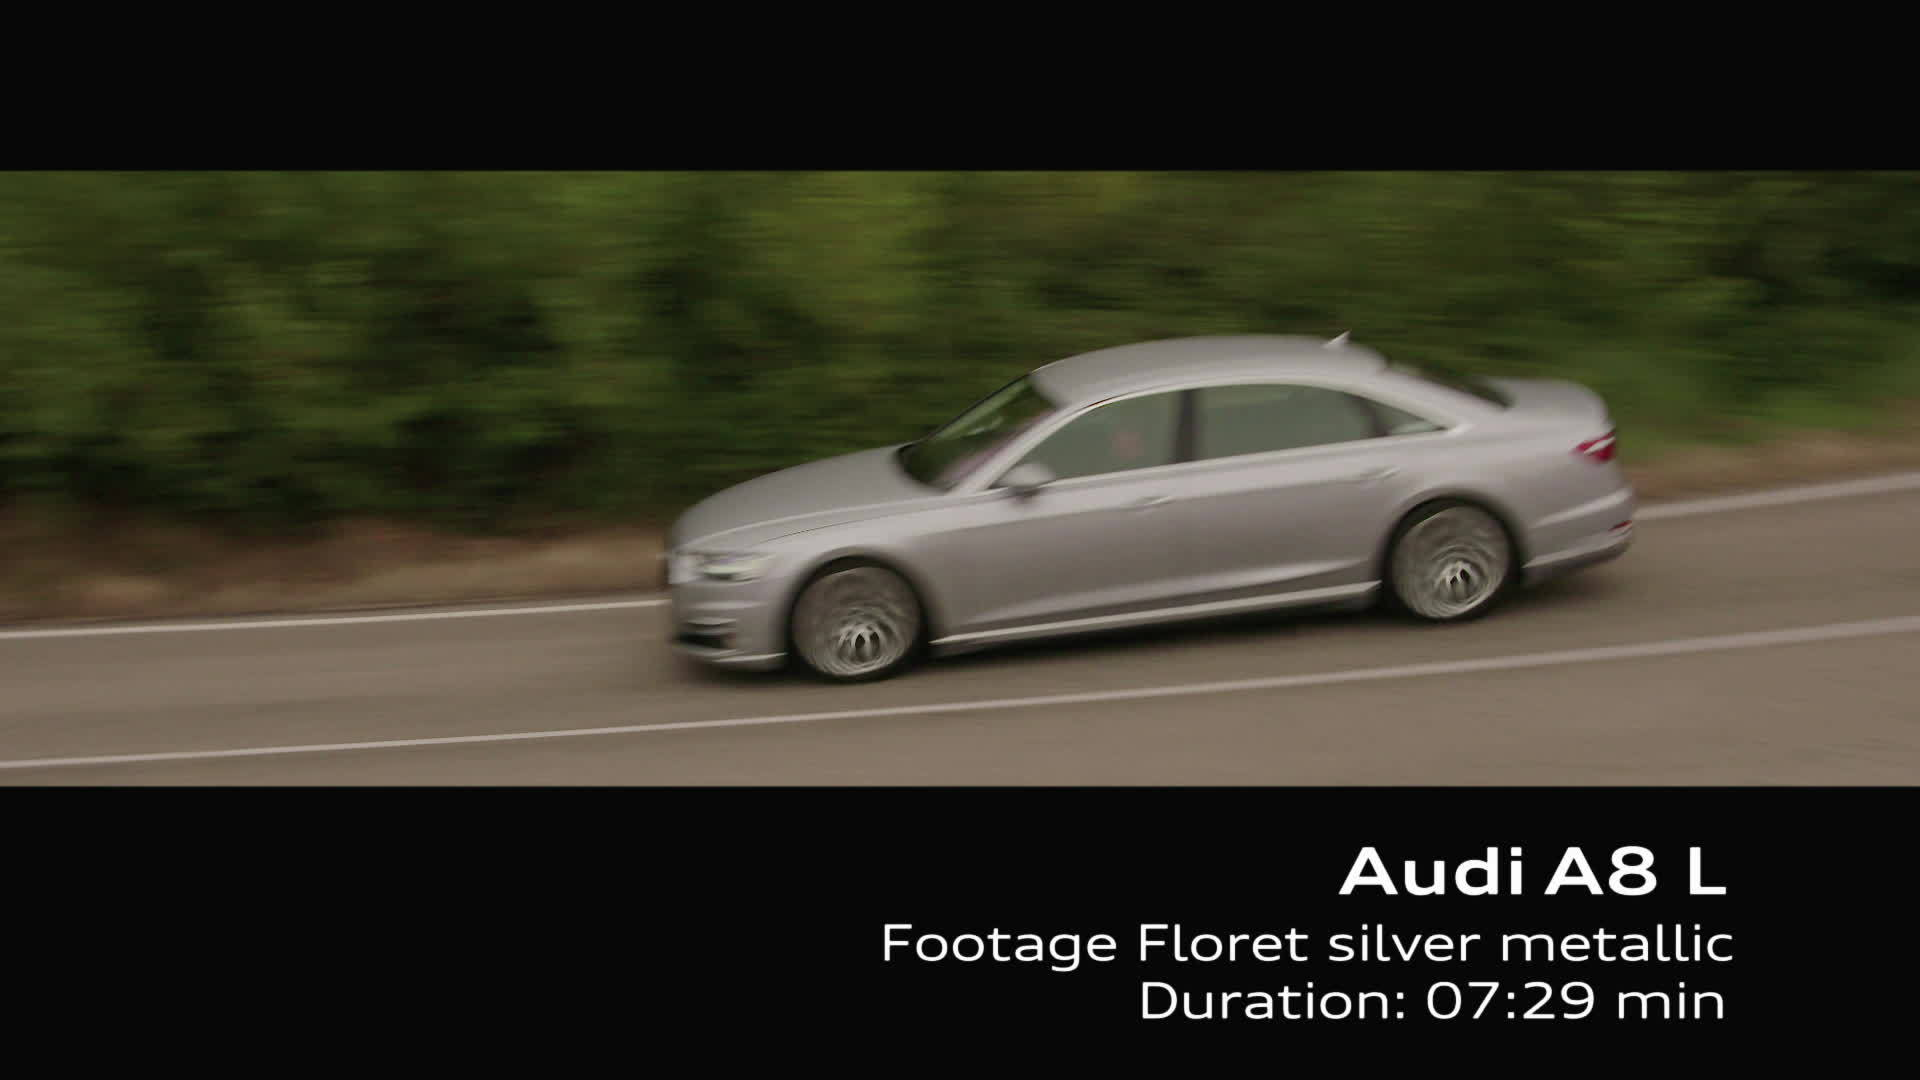 Footage Audi A8 L on Location